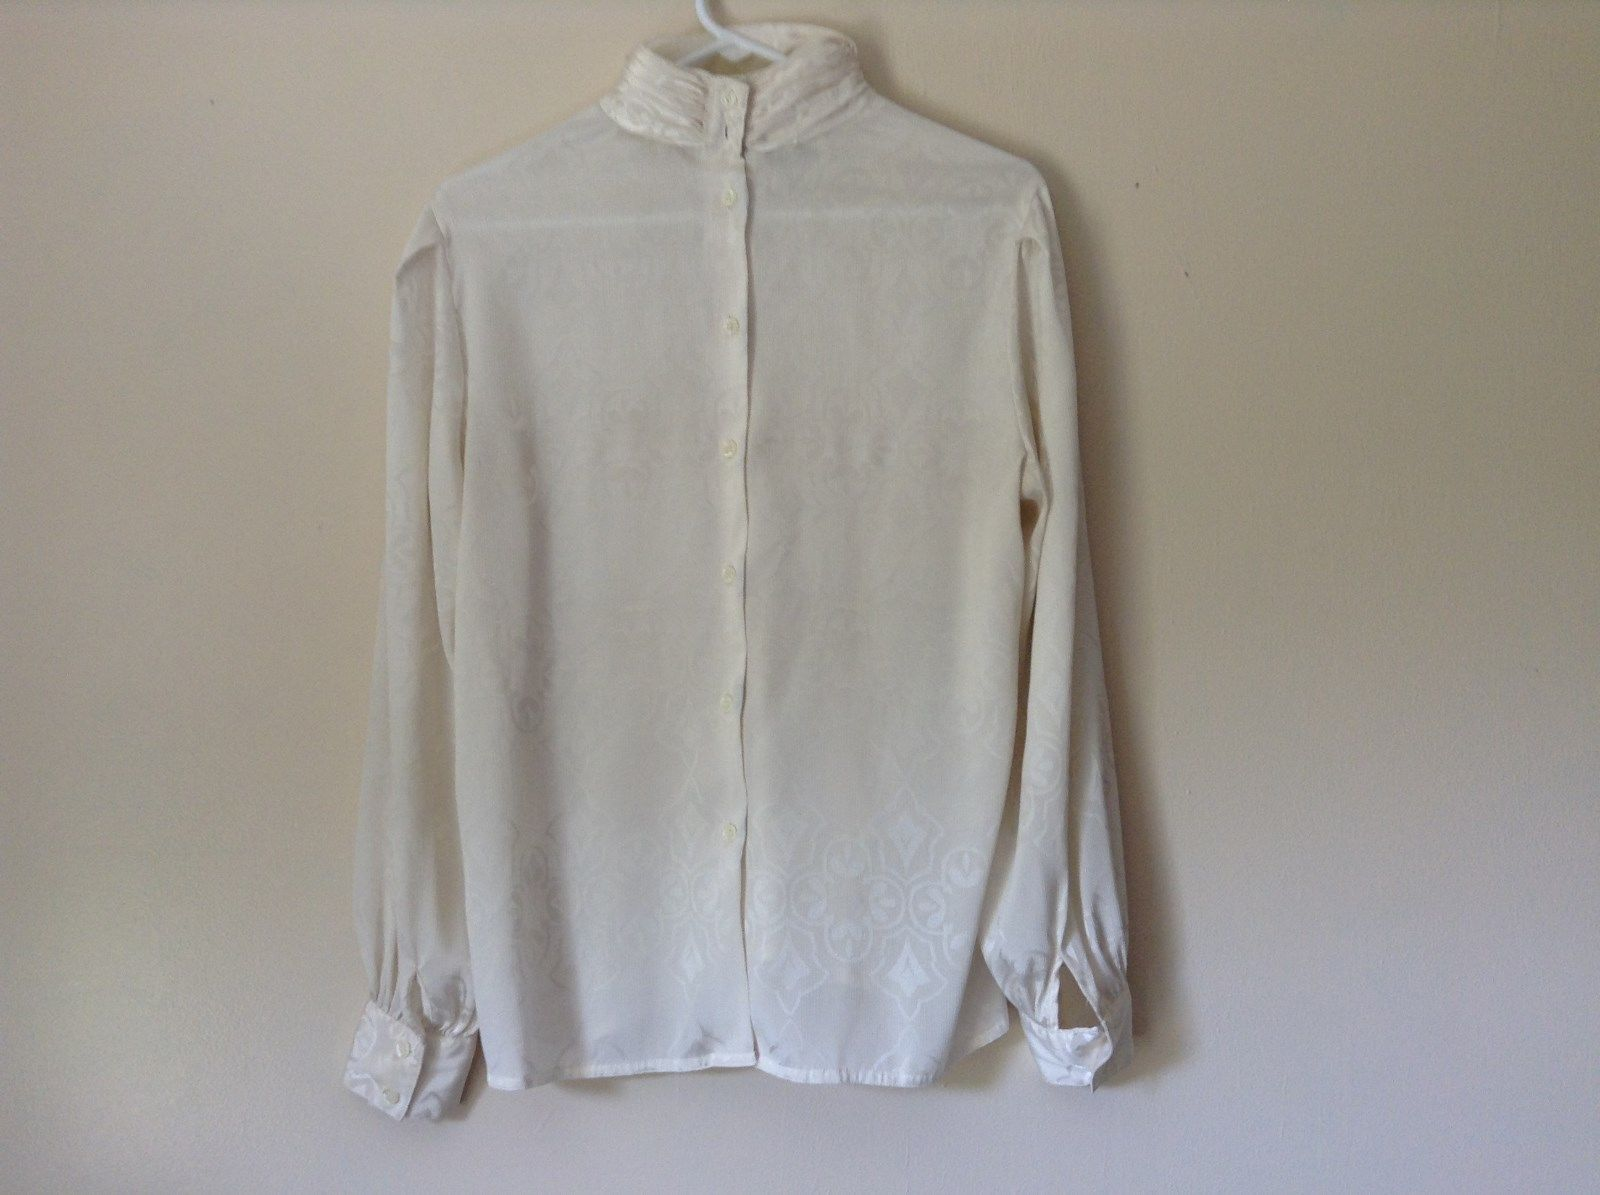 Nilani Vintage Off White Blouse 100 Percent Polyester Button Up Size 12